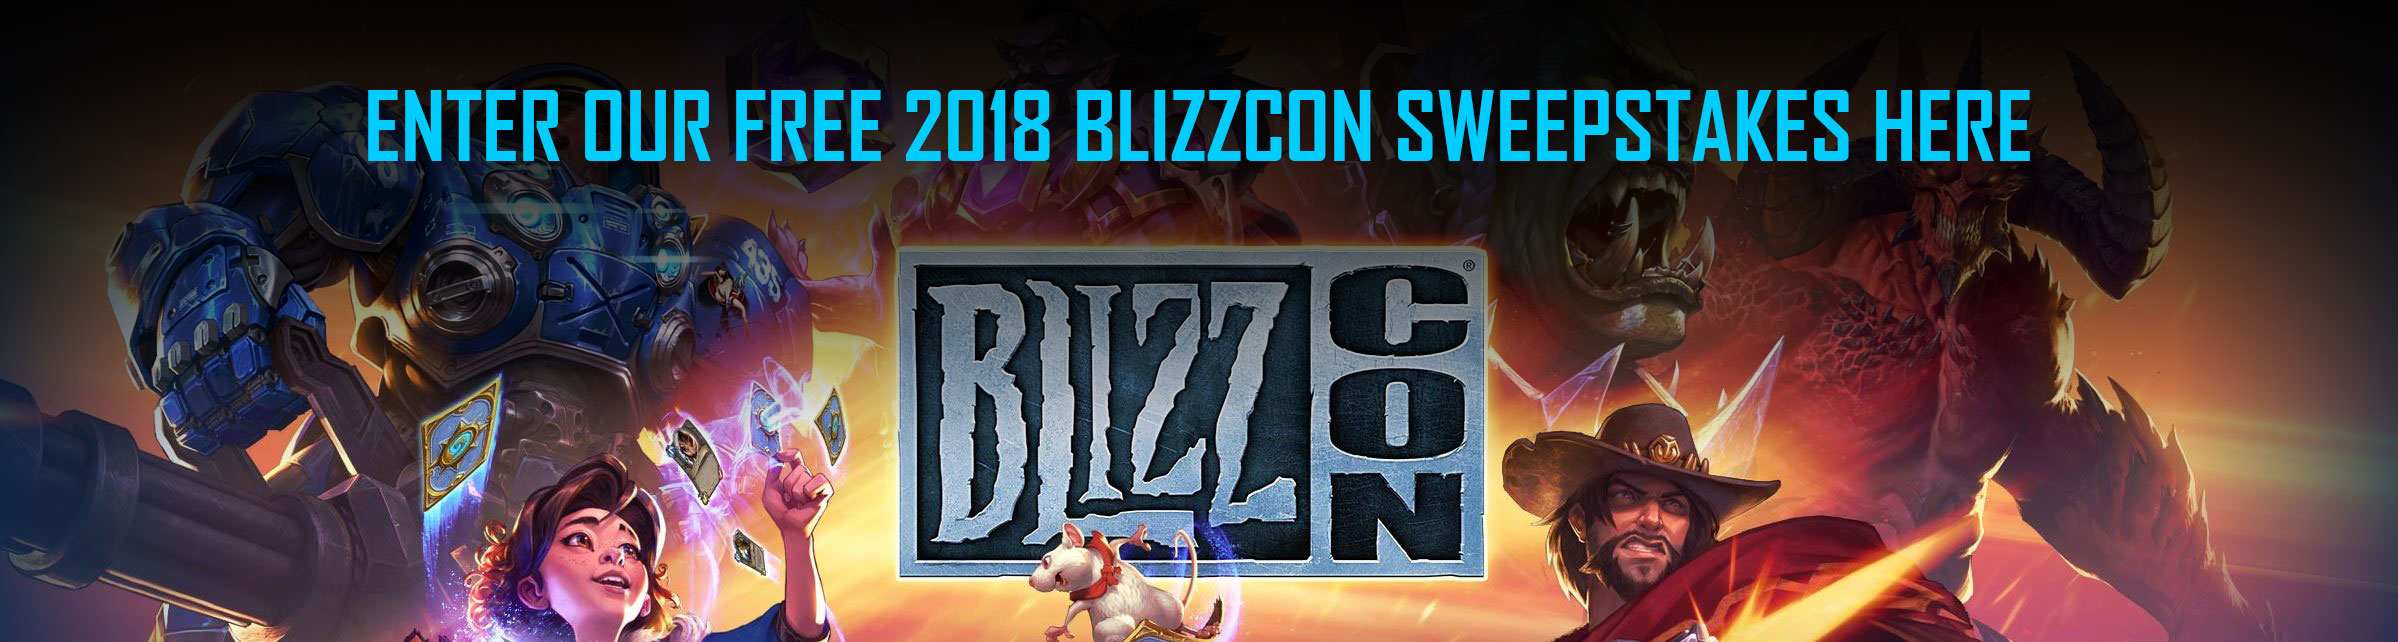 blizzcon-banner-sweepstakes.jpg